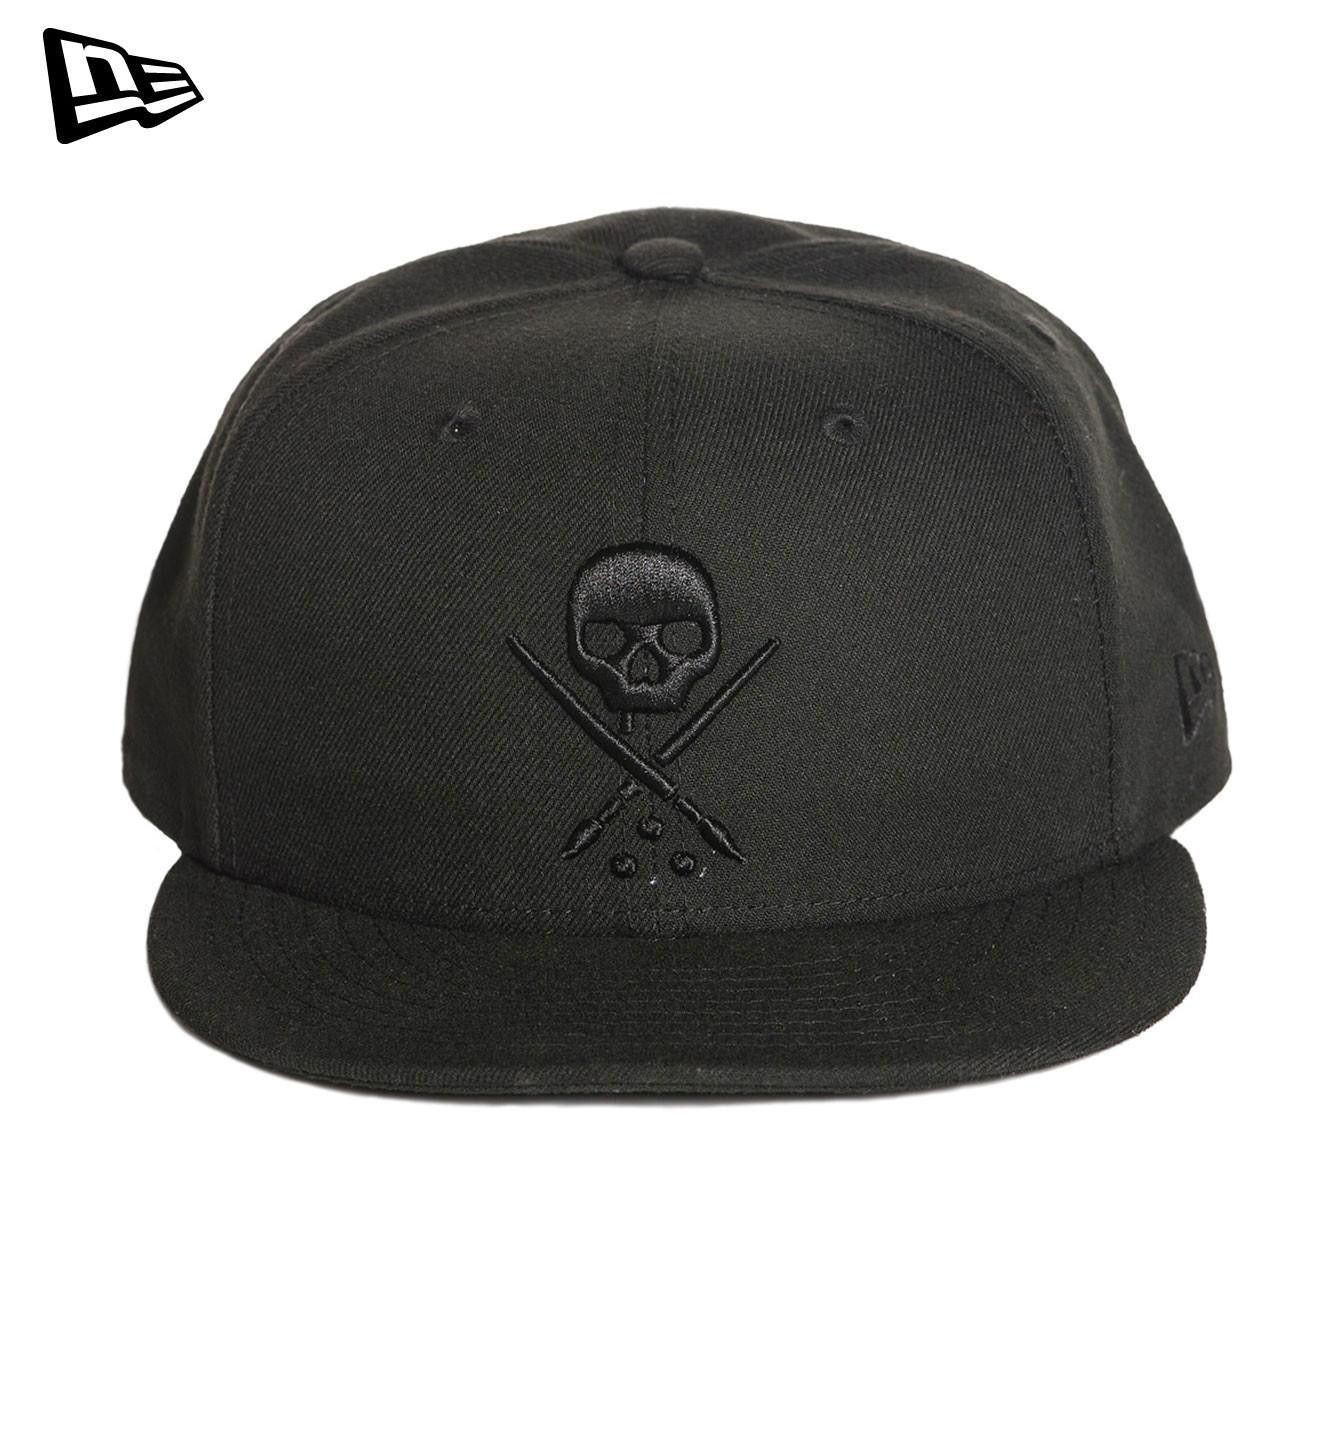 70735b816bdec8 Eternal Fitted Stealth | Ethan colby | Hats, Snapback hats, Sun hats